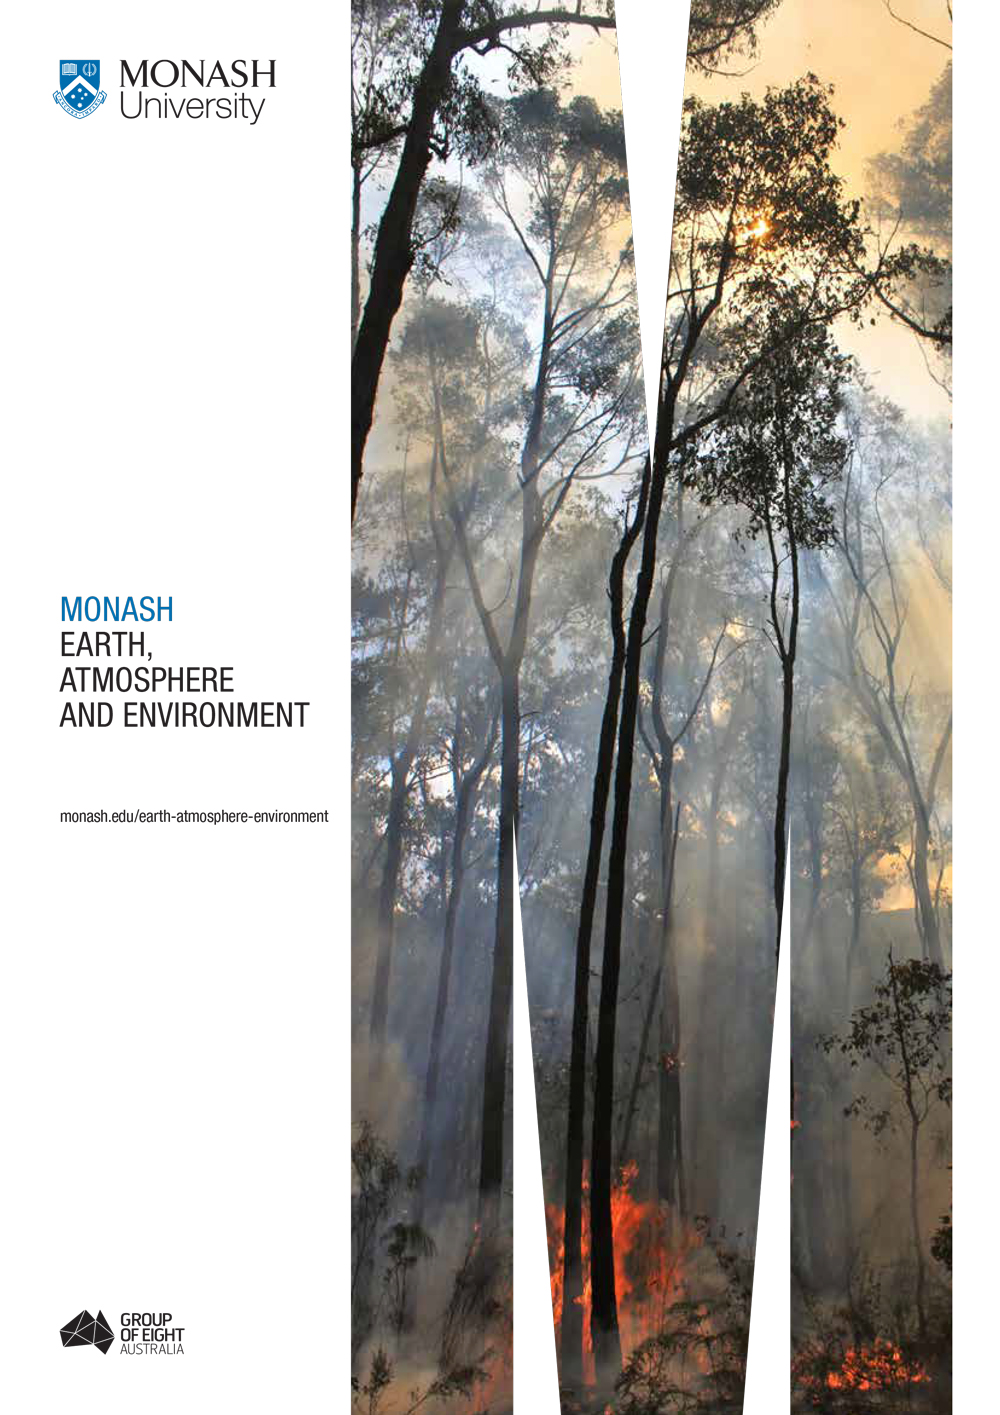 Monash Earth, Atmosphere and Environment